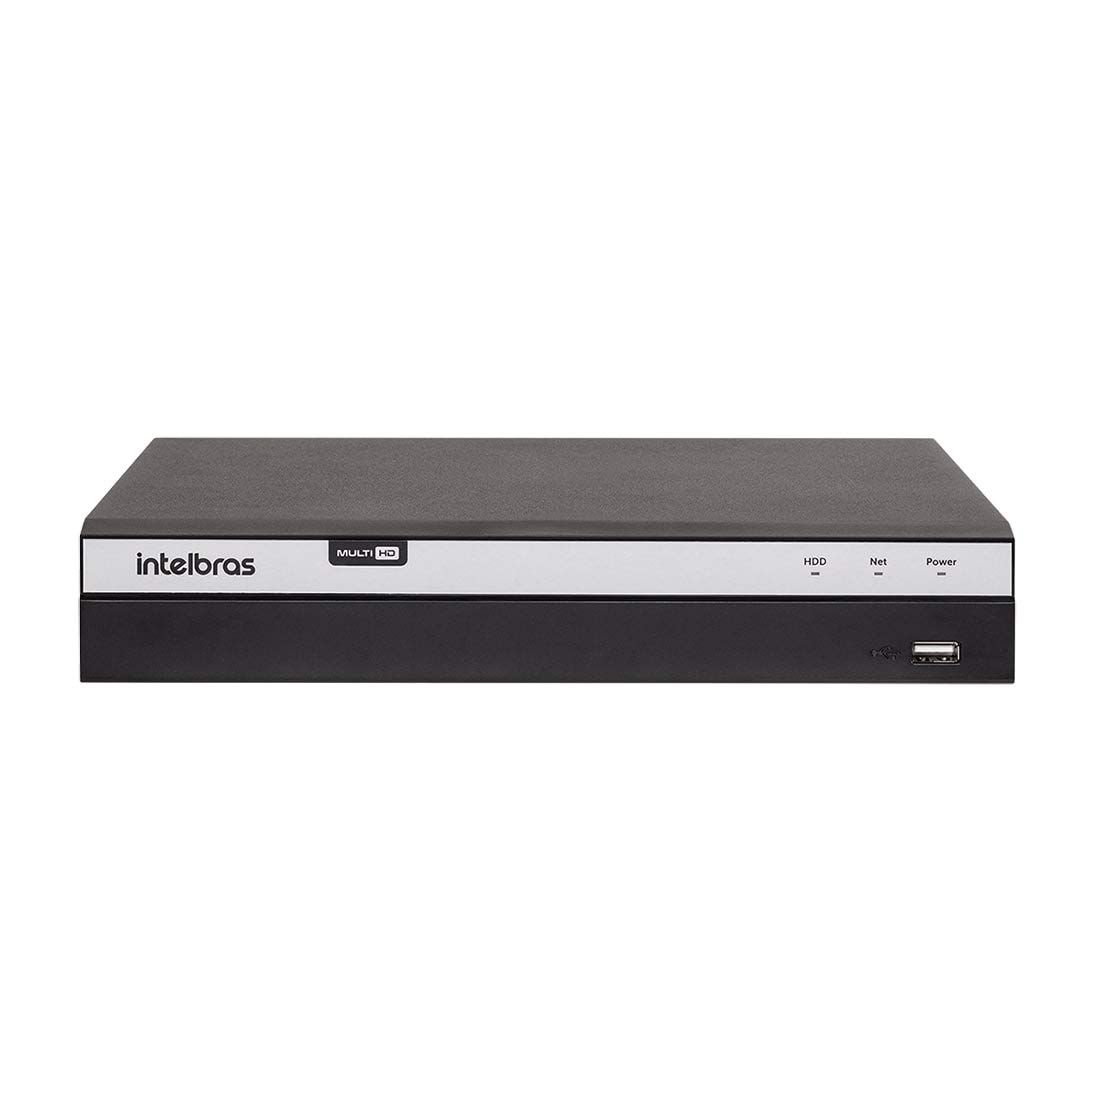 STAND ALONE INTELBRAS 4 CANAIS MHDX 1104